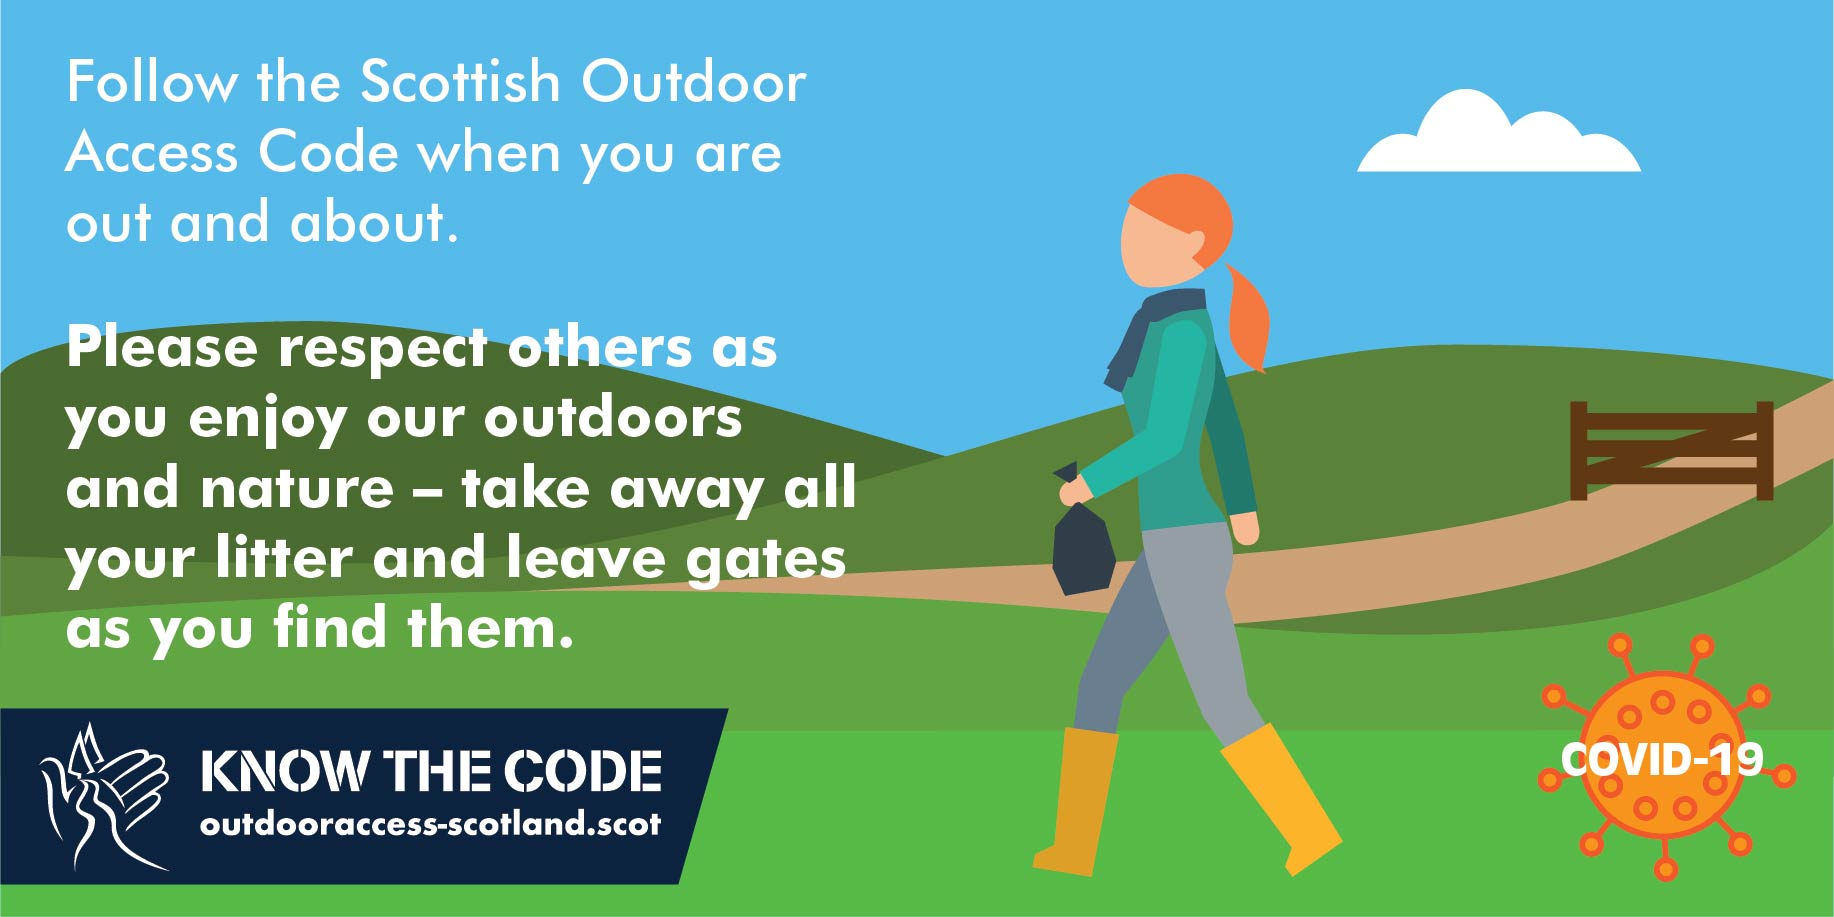 Take away litter and leave the gates infographic